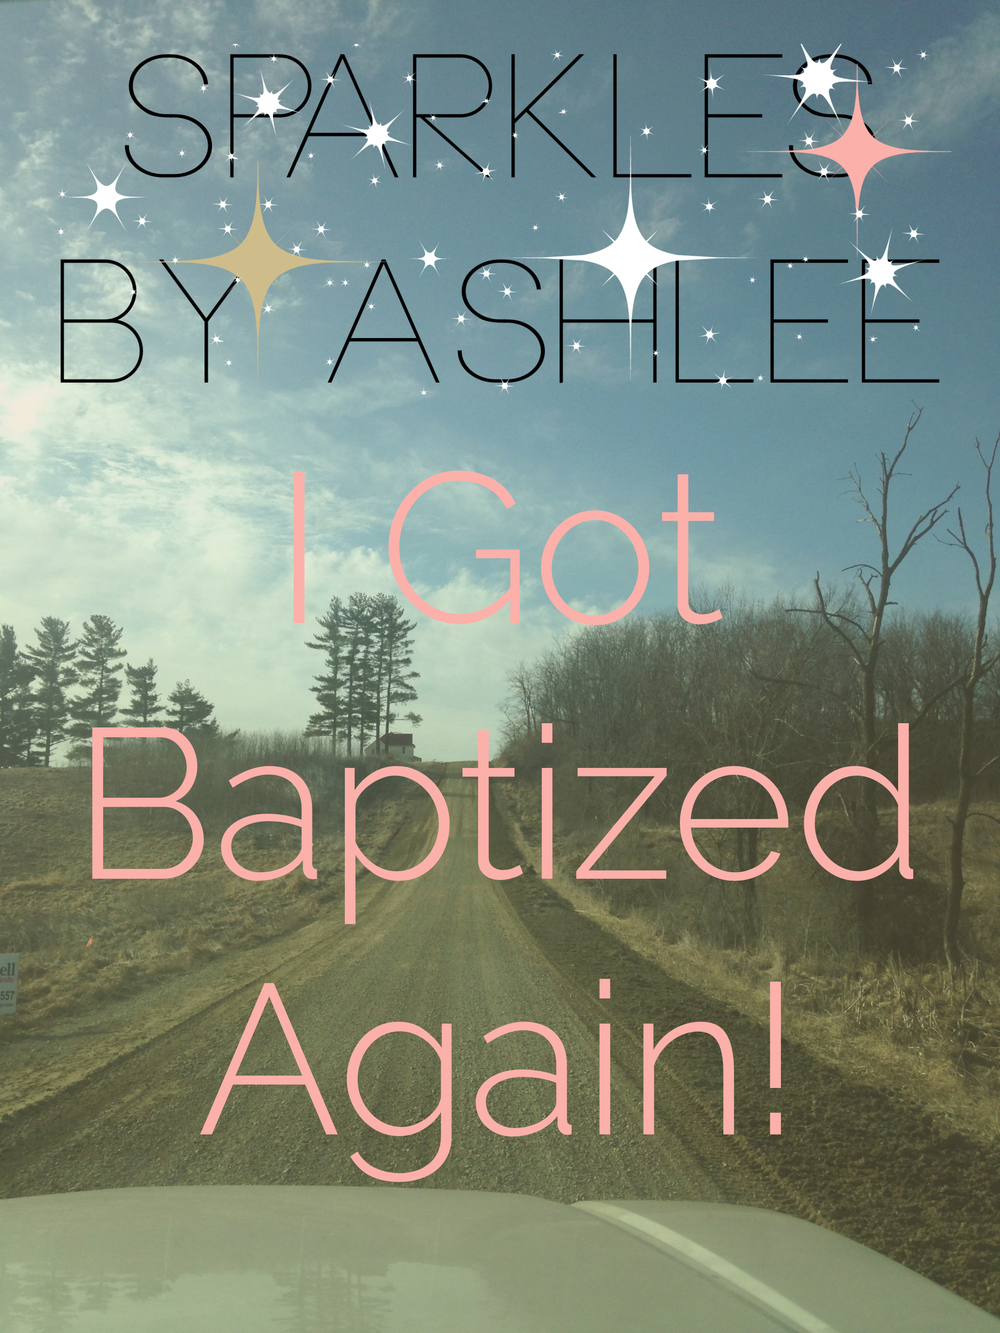 I-Got-Baptized-Again-Sparkles-by-Ashlee.jpg